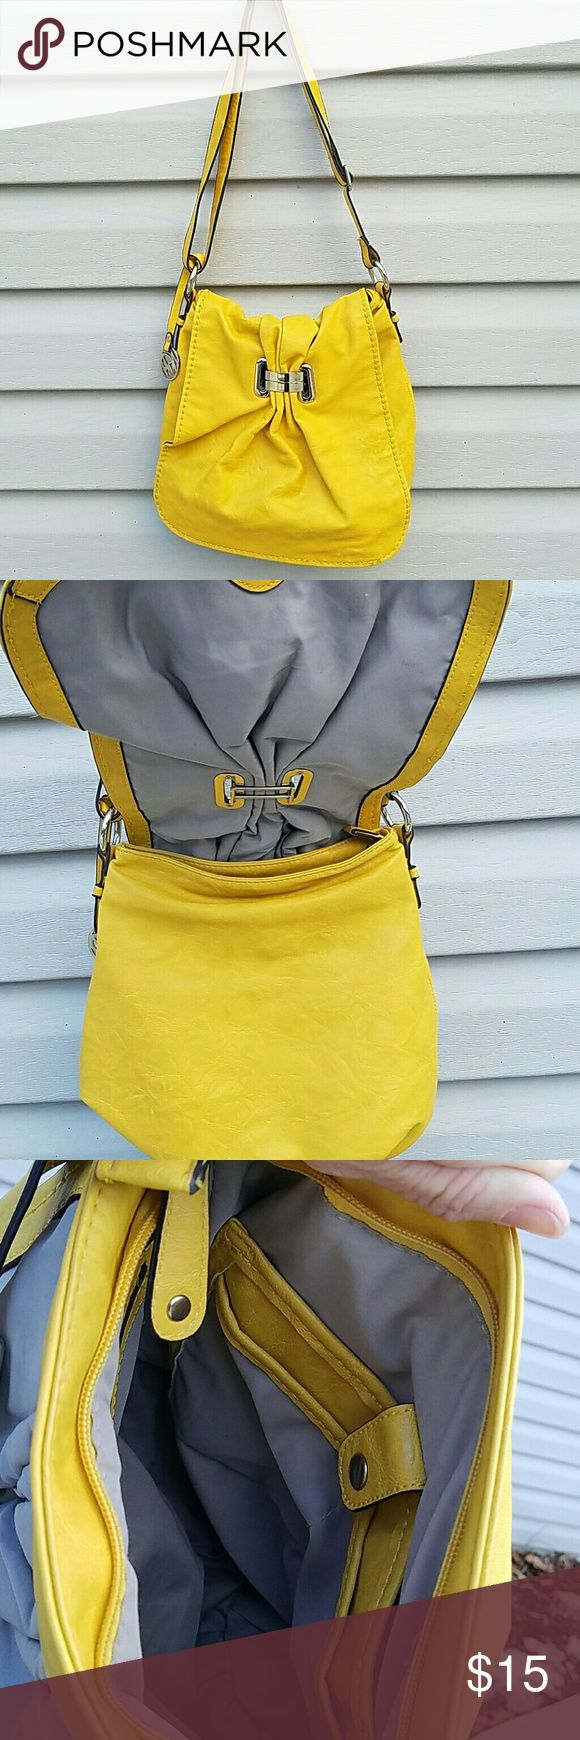 """Yellow Shoulder bag. Strap drop in picture is 15"""" but it can be adjusted.  The outside is in good condition. The inside has some pen marks. Bags Shoulder Bags"""